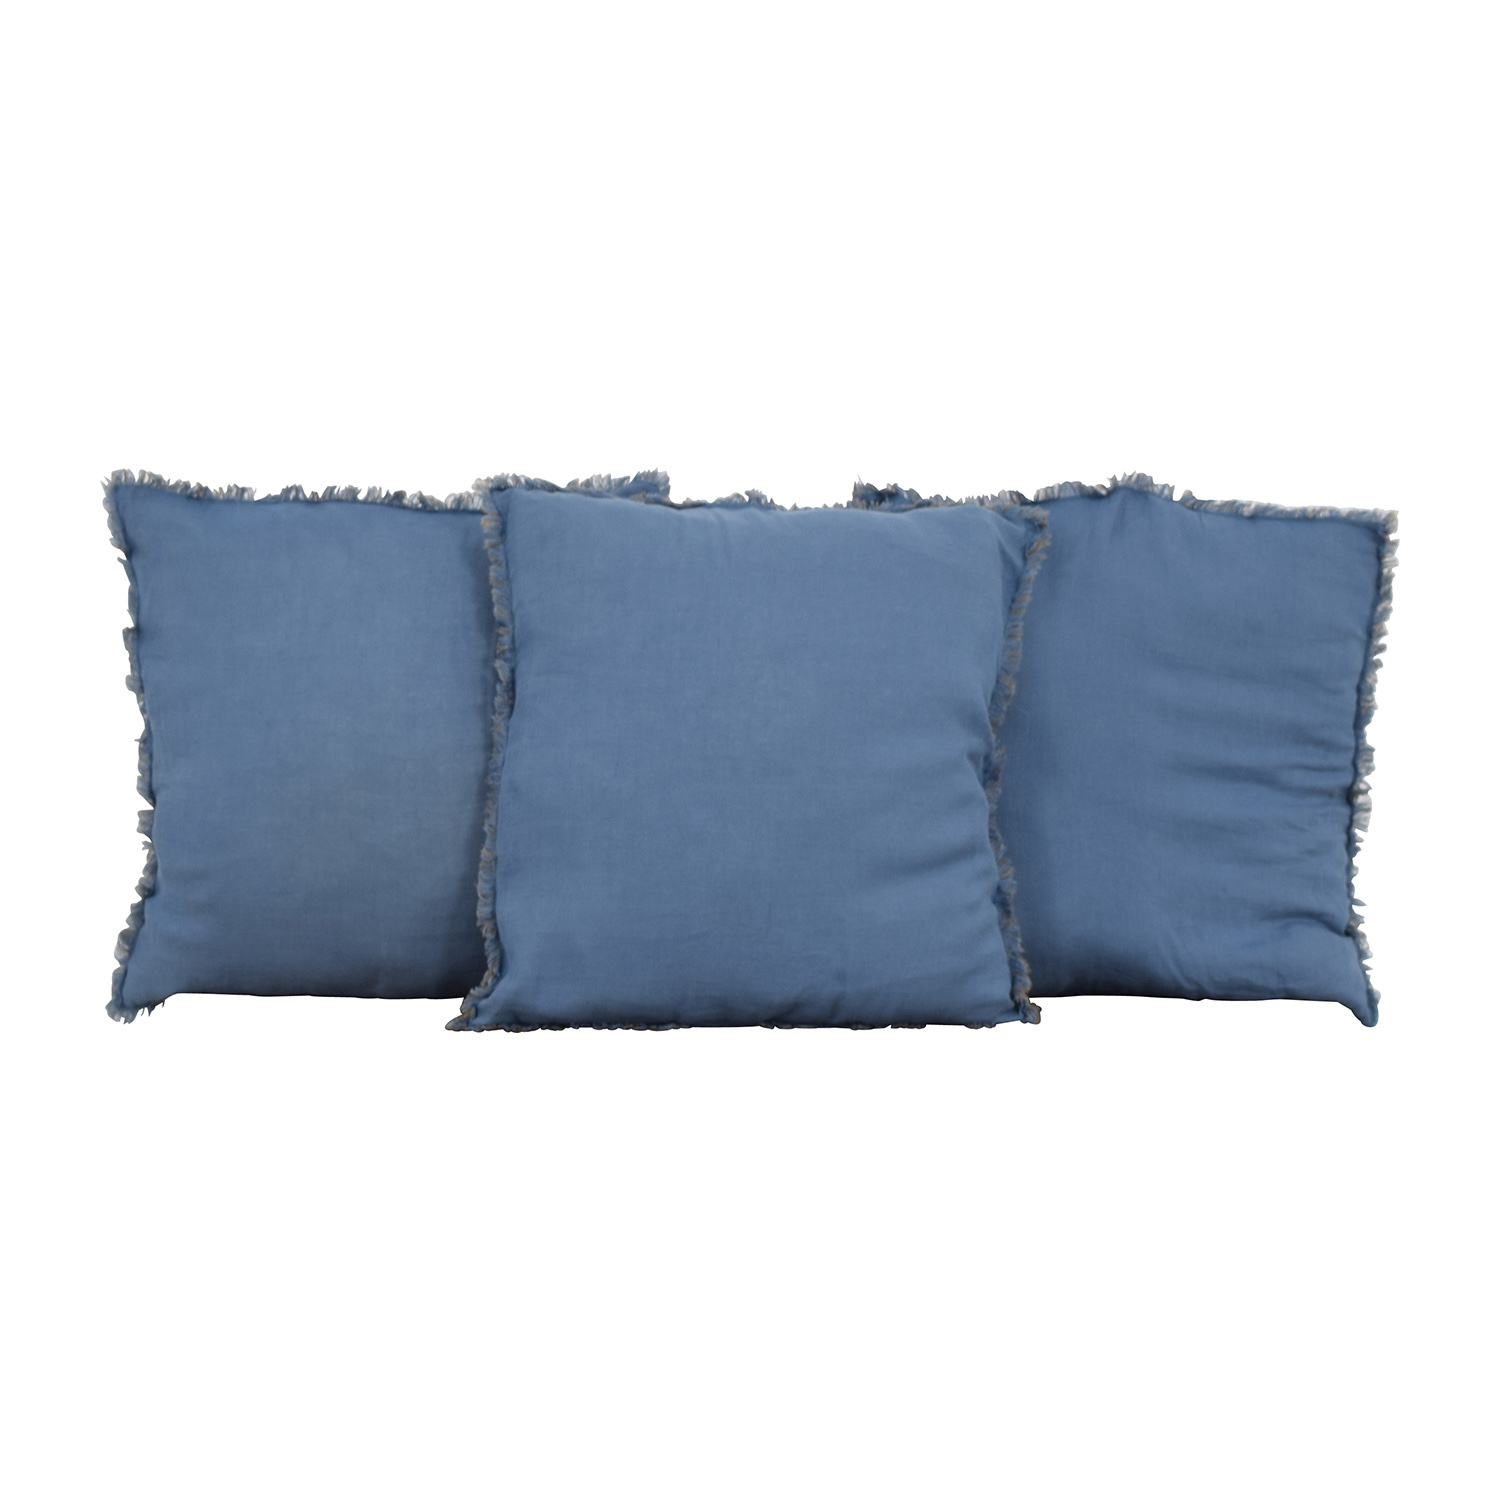 Reversible Blue and Brown Toss Pillows